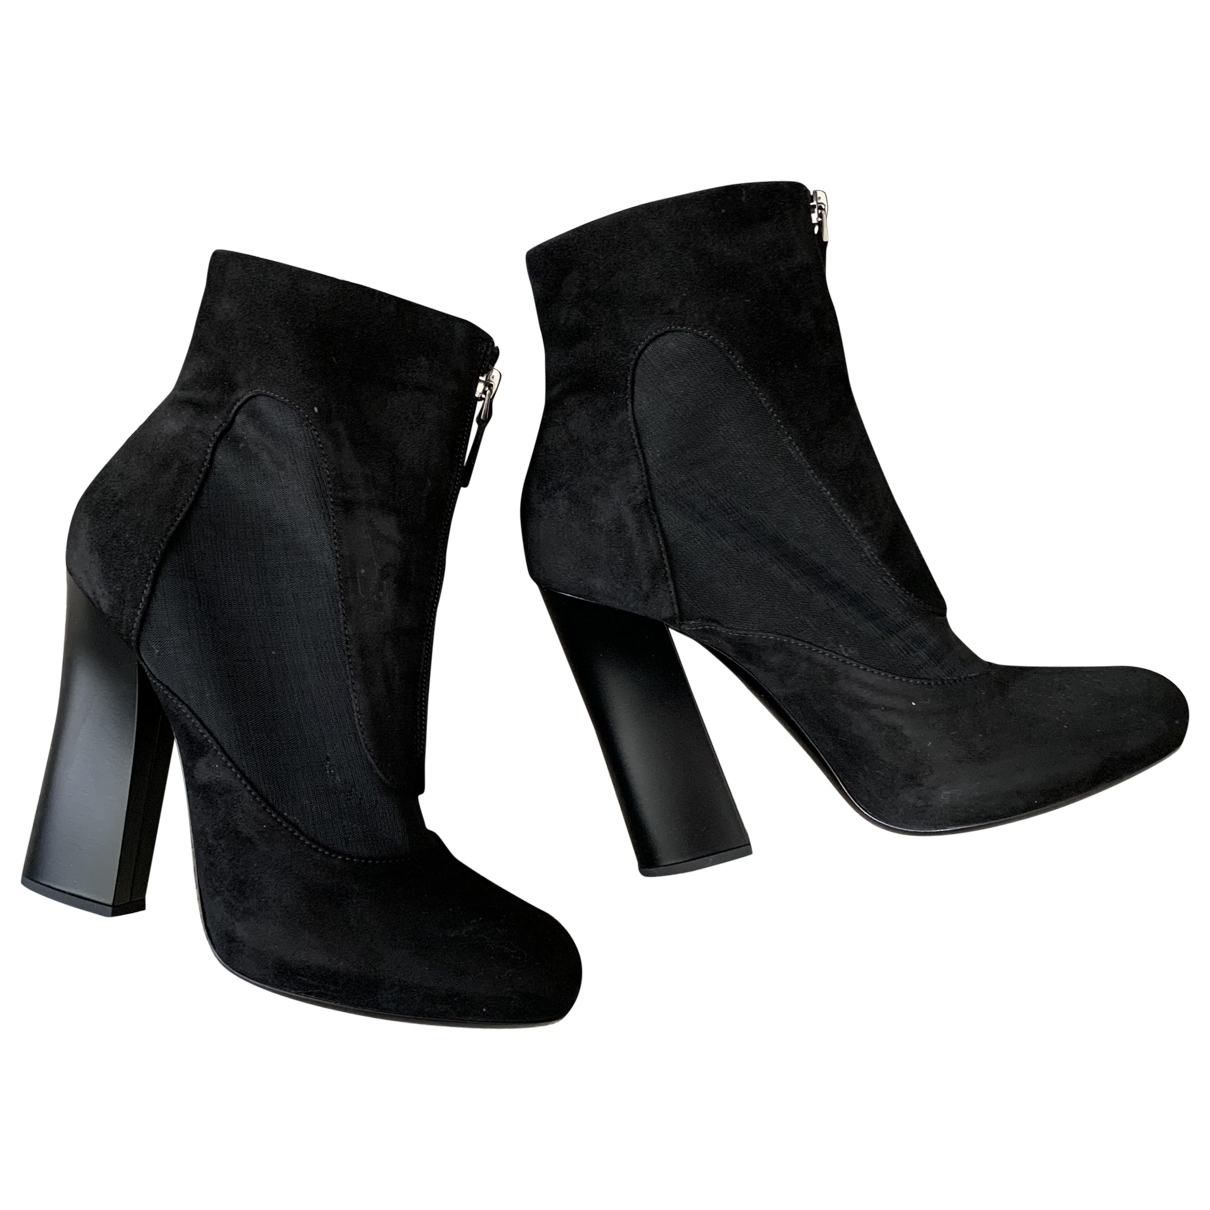 Emporio Armani \N Black Suede Ankle boots for Women 41 EU